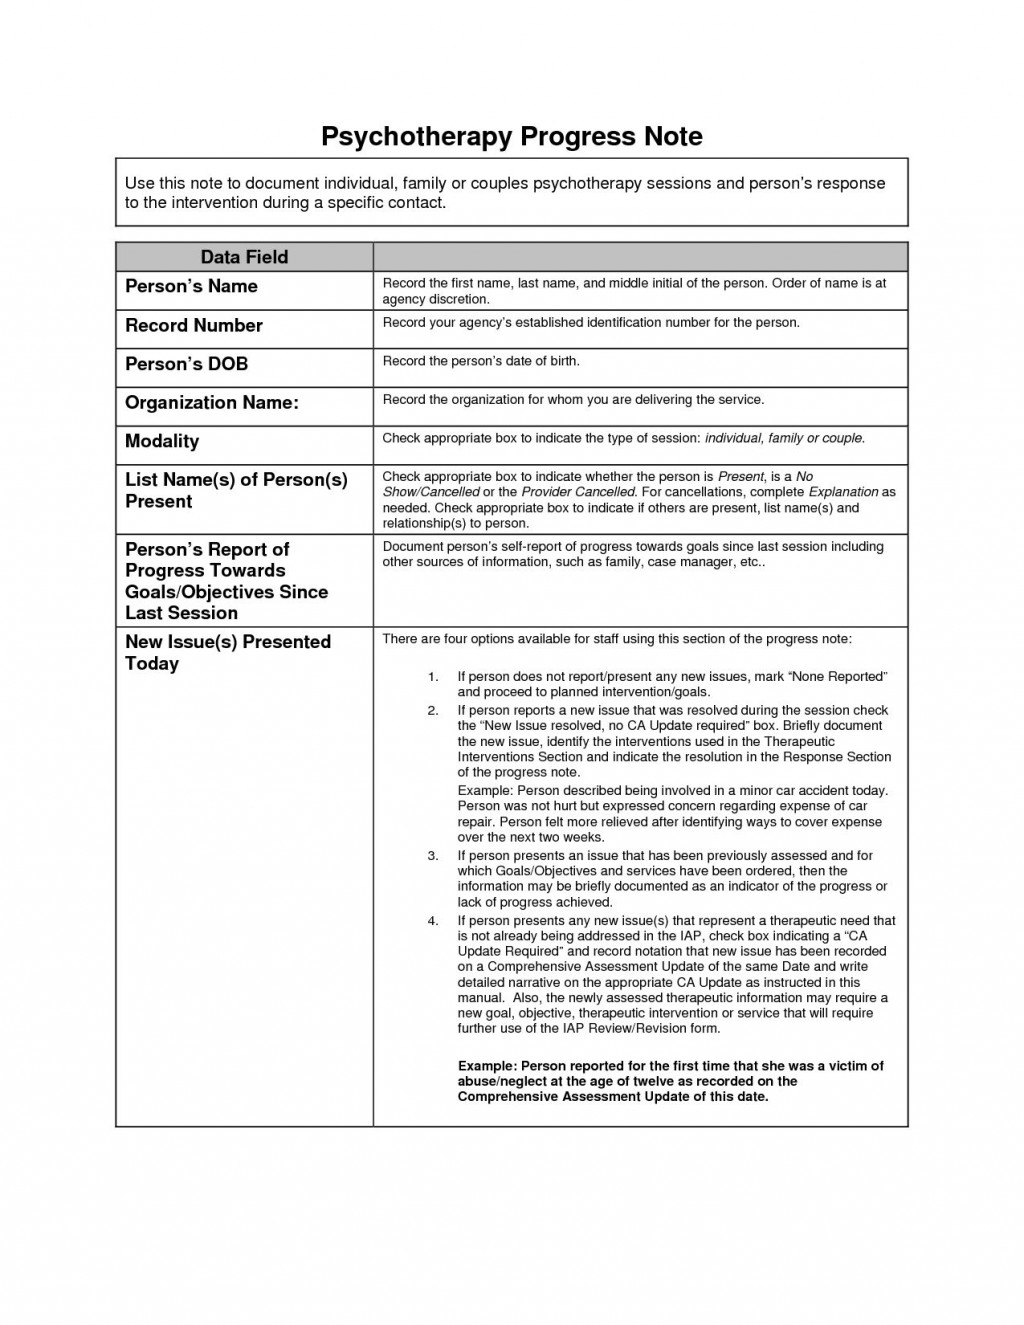 000 Awful Counseling Progres Note Template Image  Physical Therapy Pdf FreeLarge